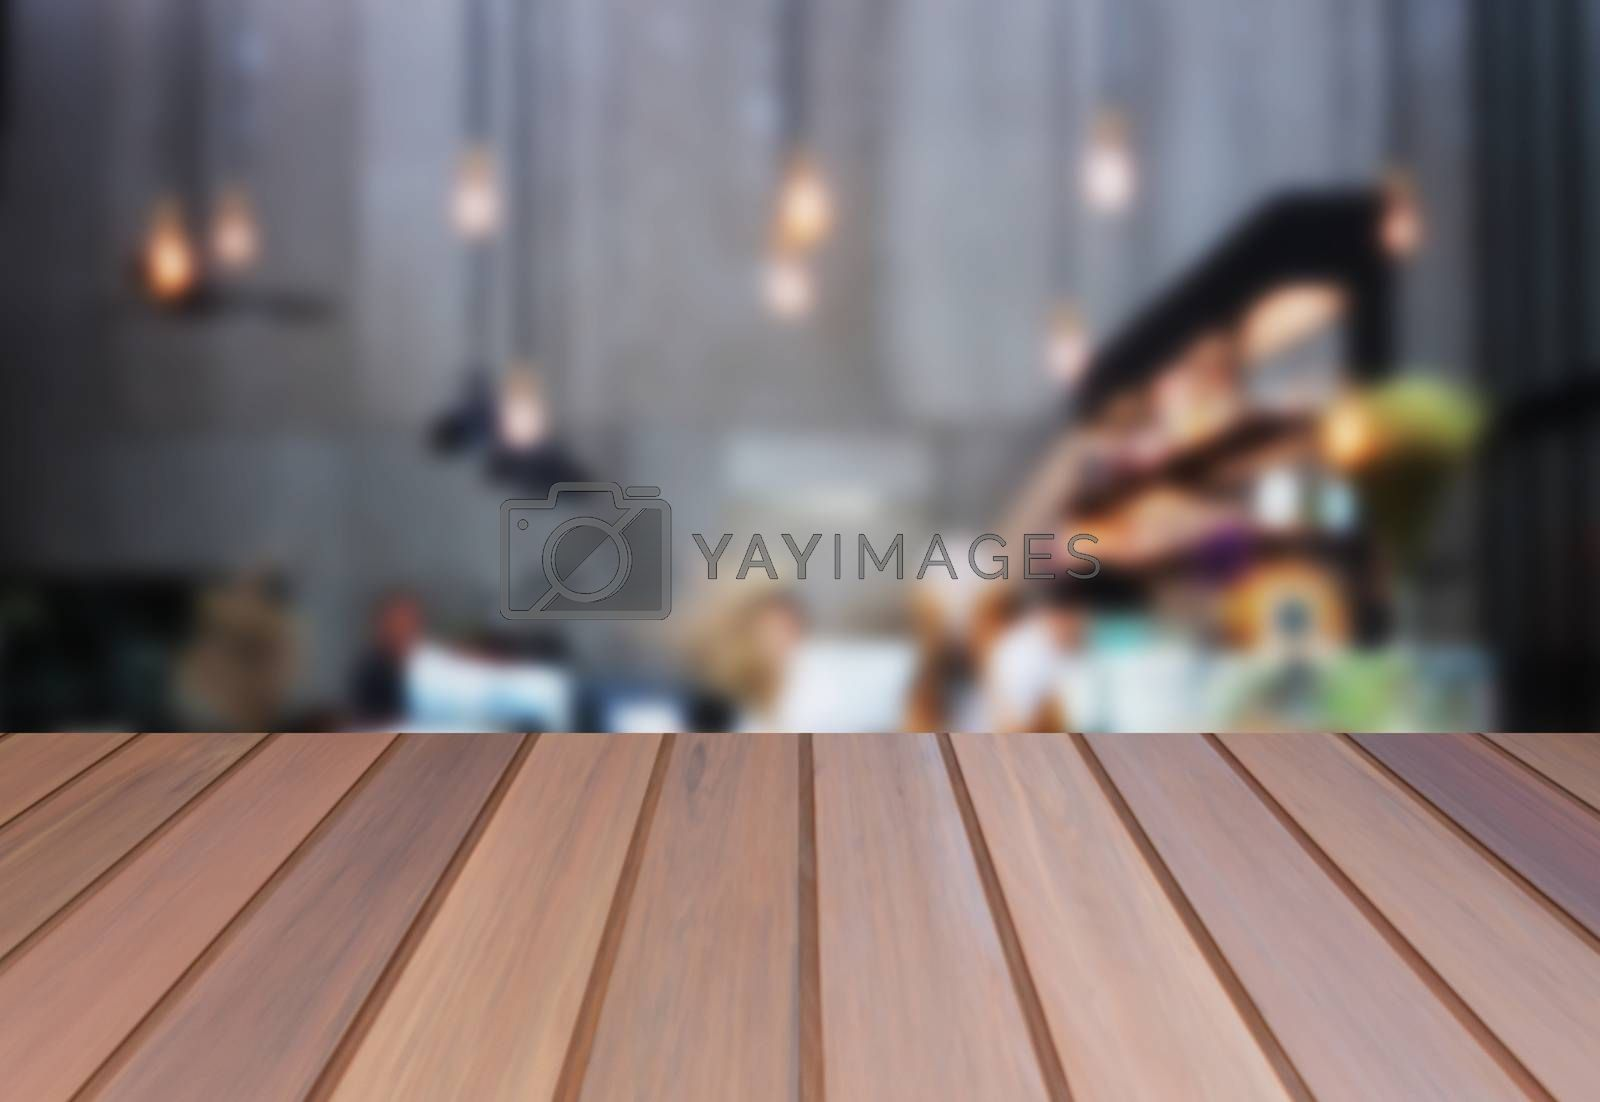 Brown table top wooden with blurred background. product display template